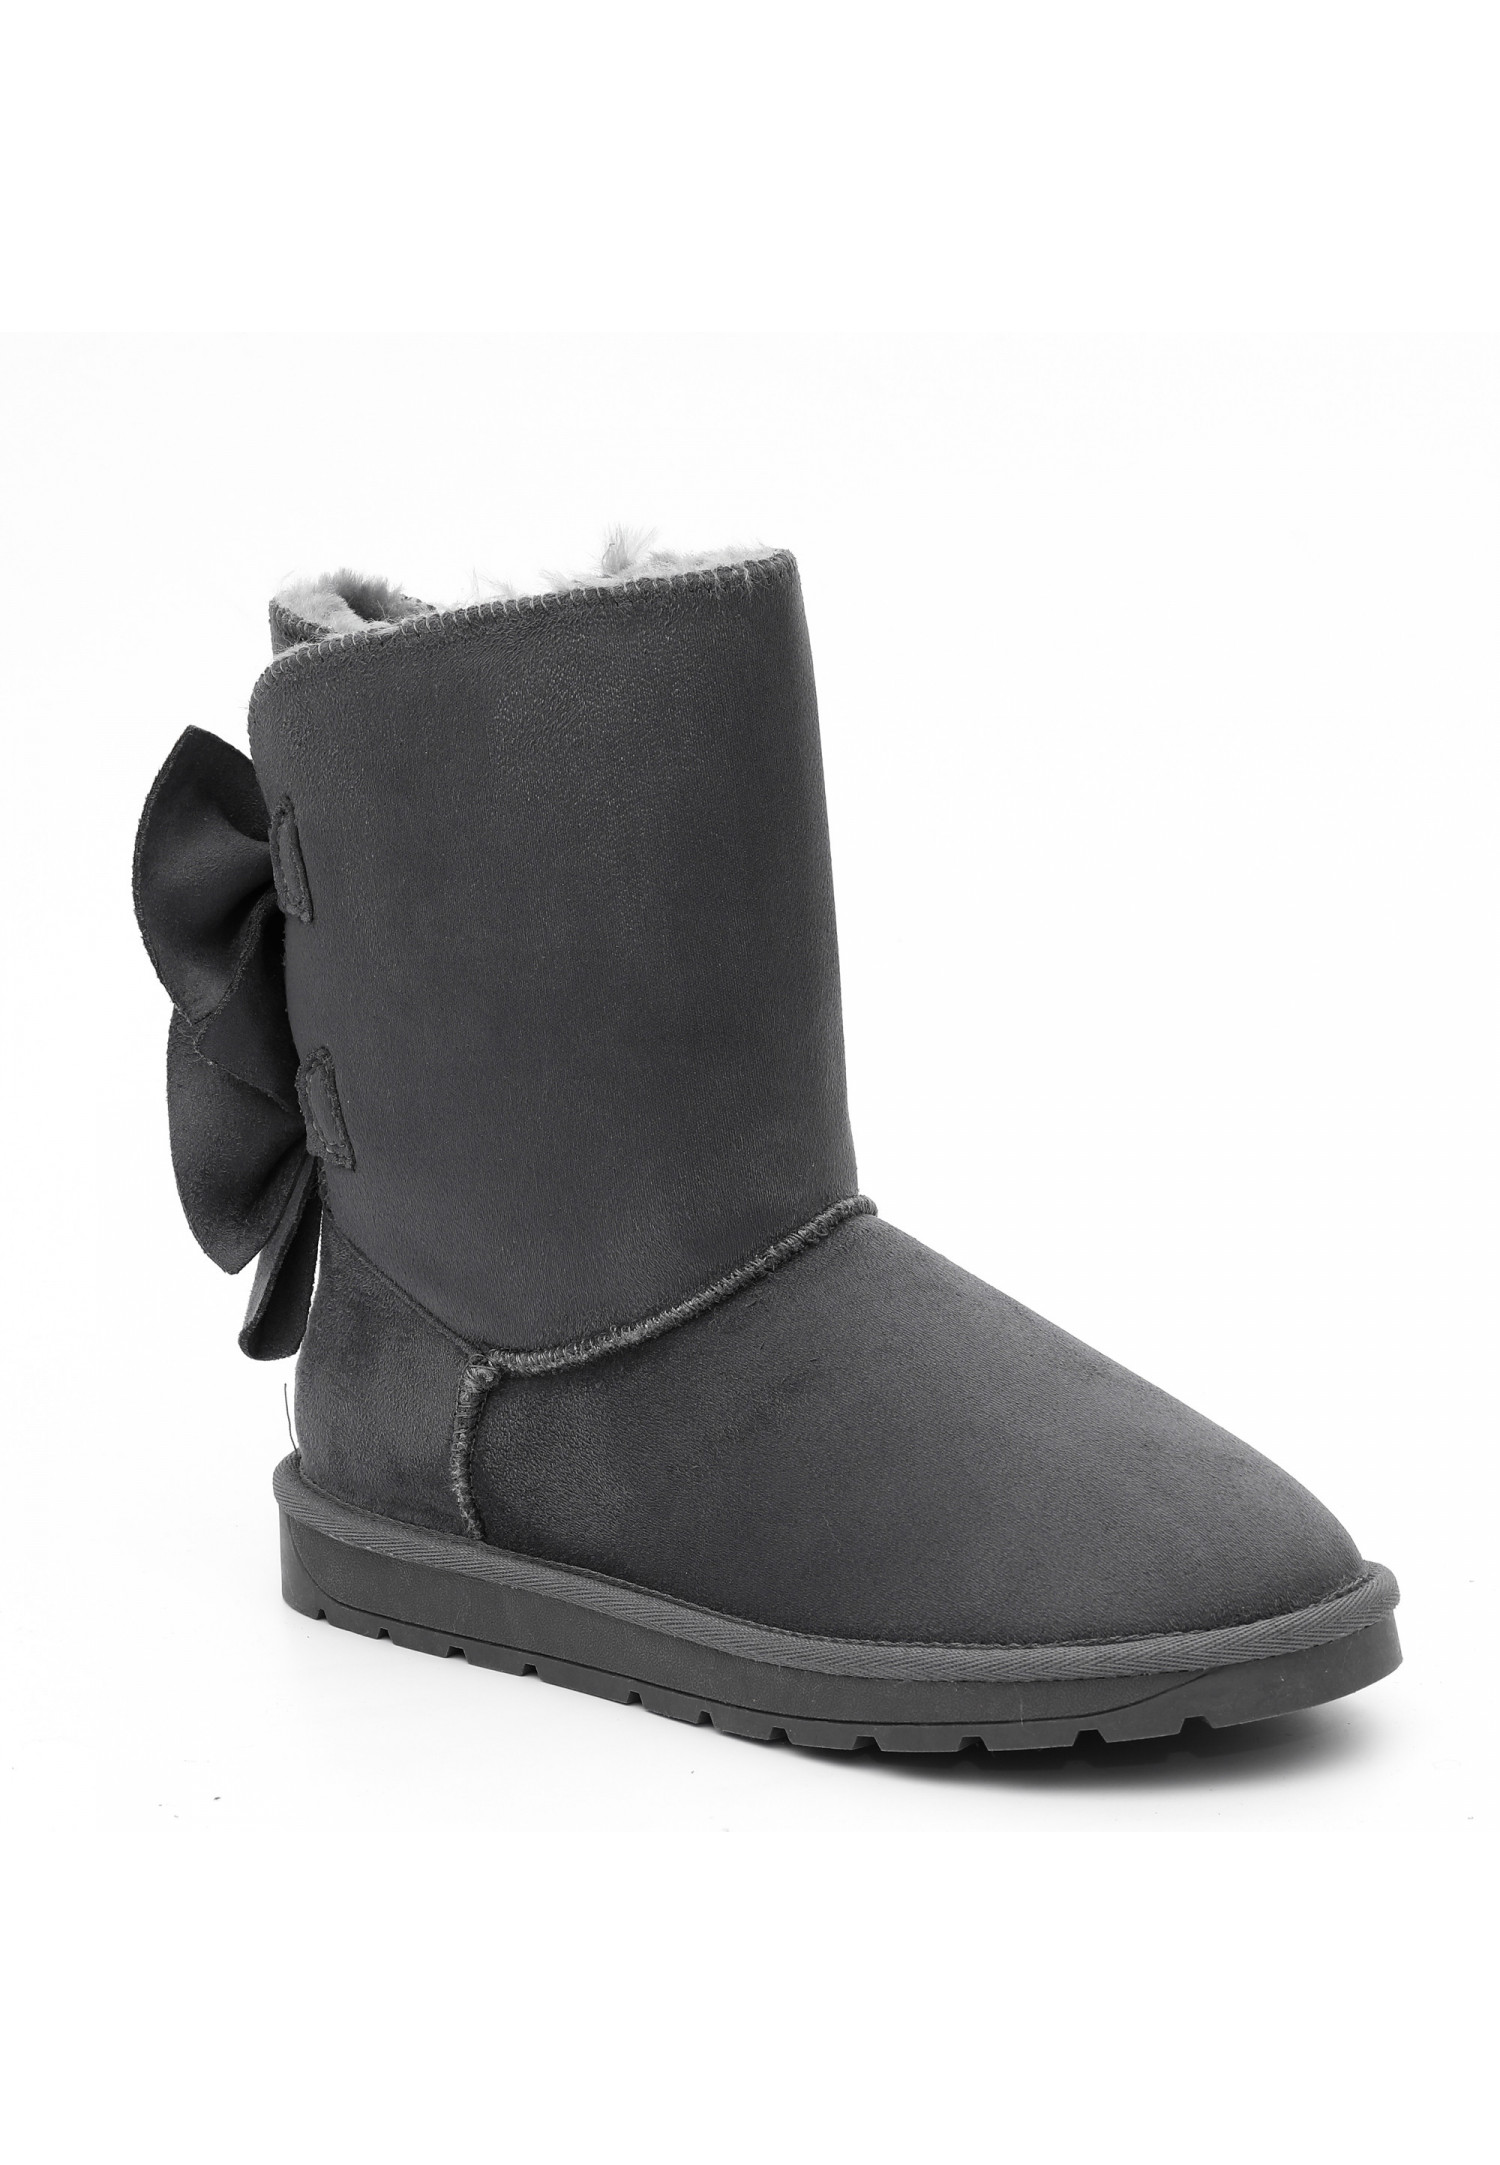 Bottines Enfants Bowette